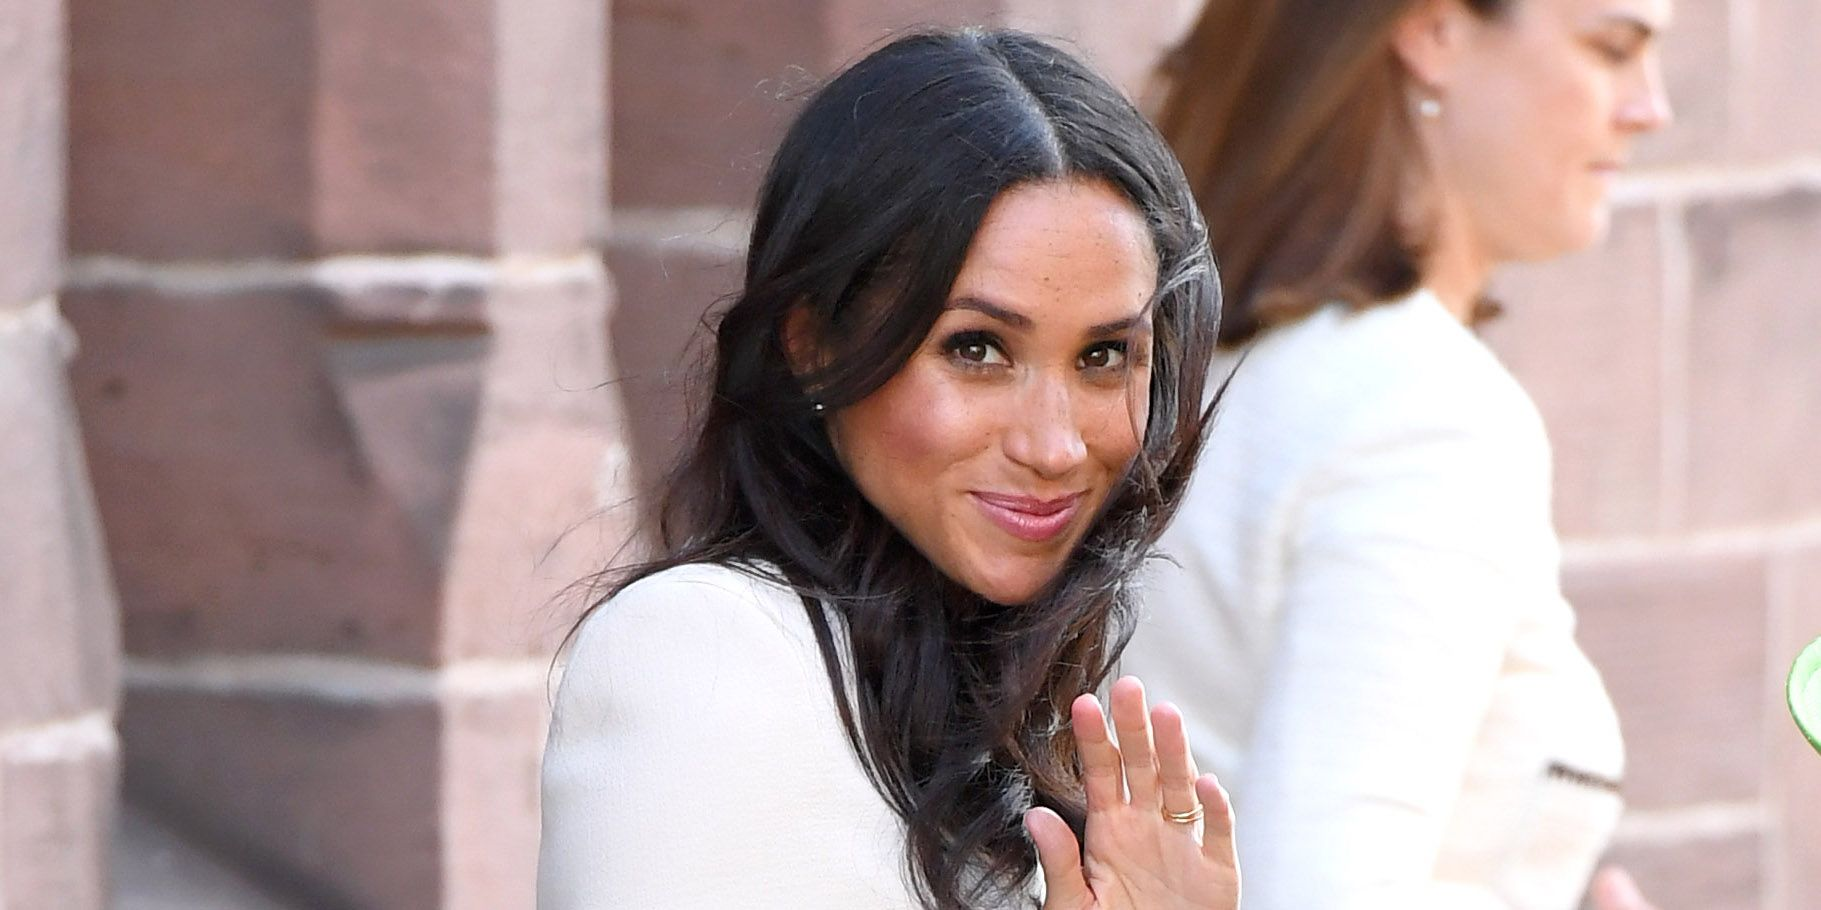 how much do meghan markle s clothes cost meghan markle s royal wardrobe estimated at 1 million meghan markle s royal wardrobe